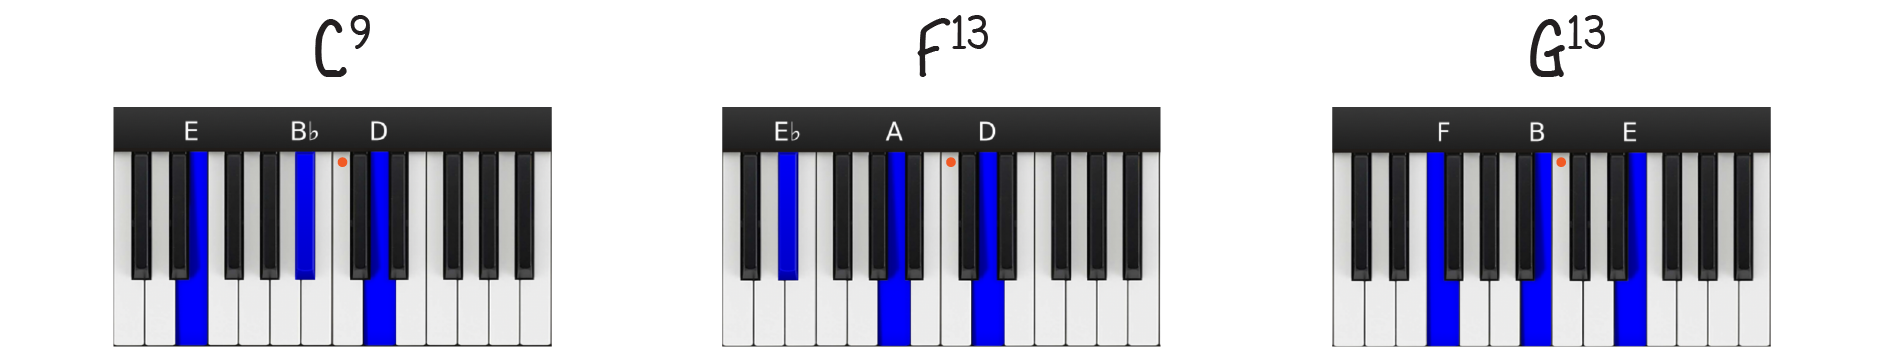 C Blues Rootless Dominant Voicings